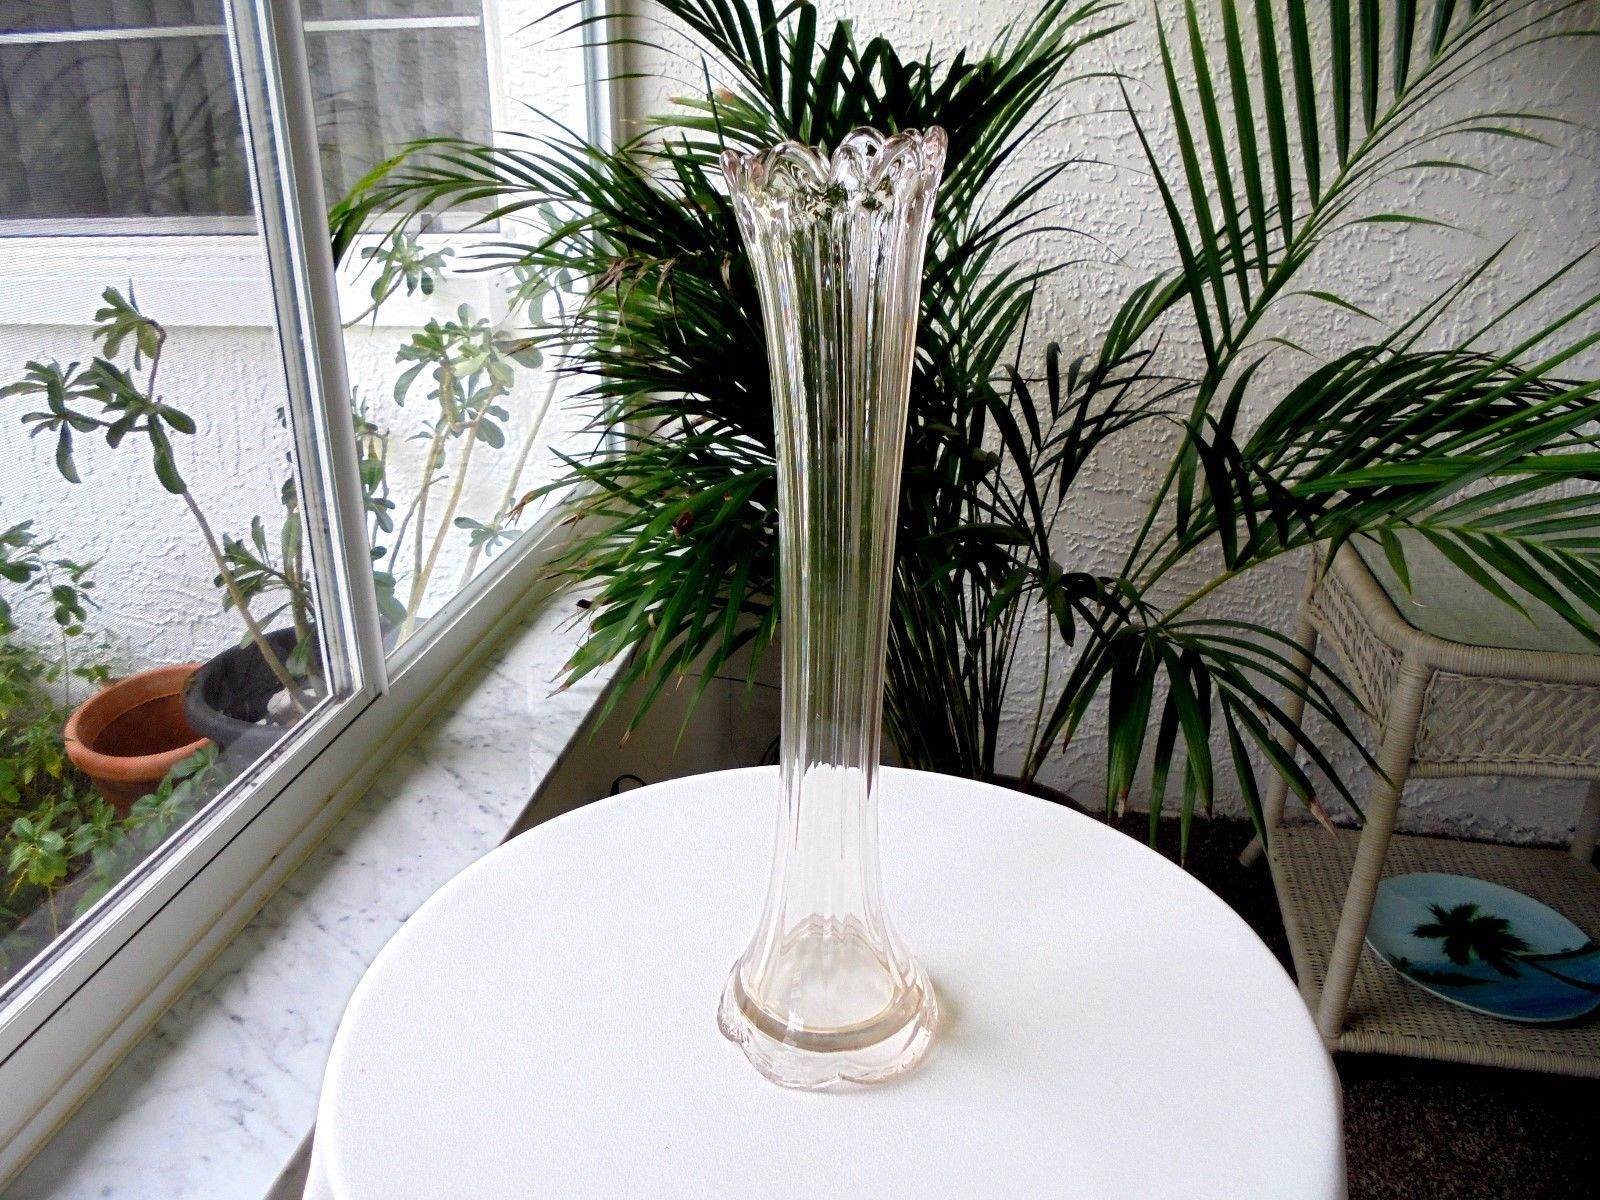 22 Unique Tall Mercury Glass Vase 2021 free download tall mercury glass vase of large mercury glass vase beautiful antique glass tall clear flower pertaining to large mercury glass vase beautiful antique glass tall clear flower vase c1900 22 3